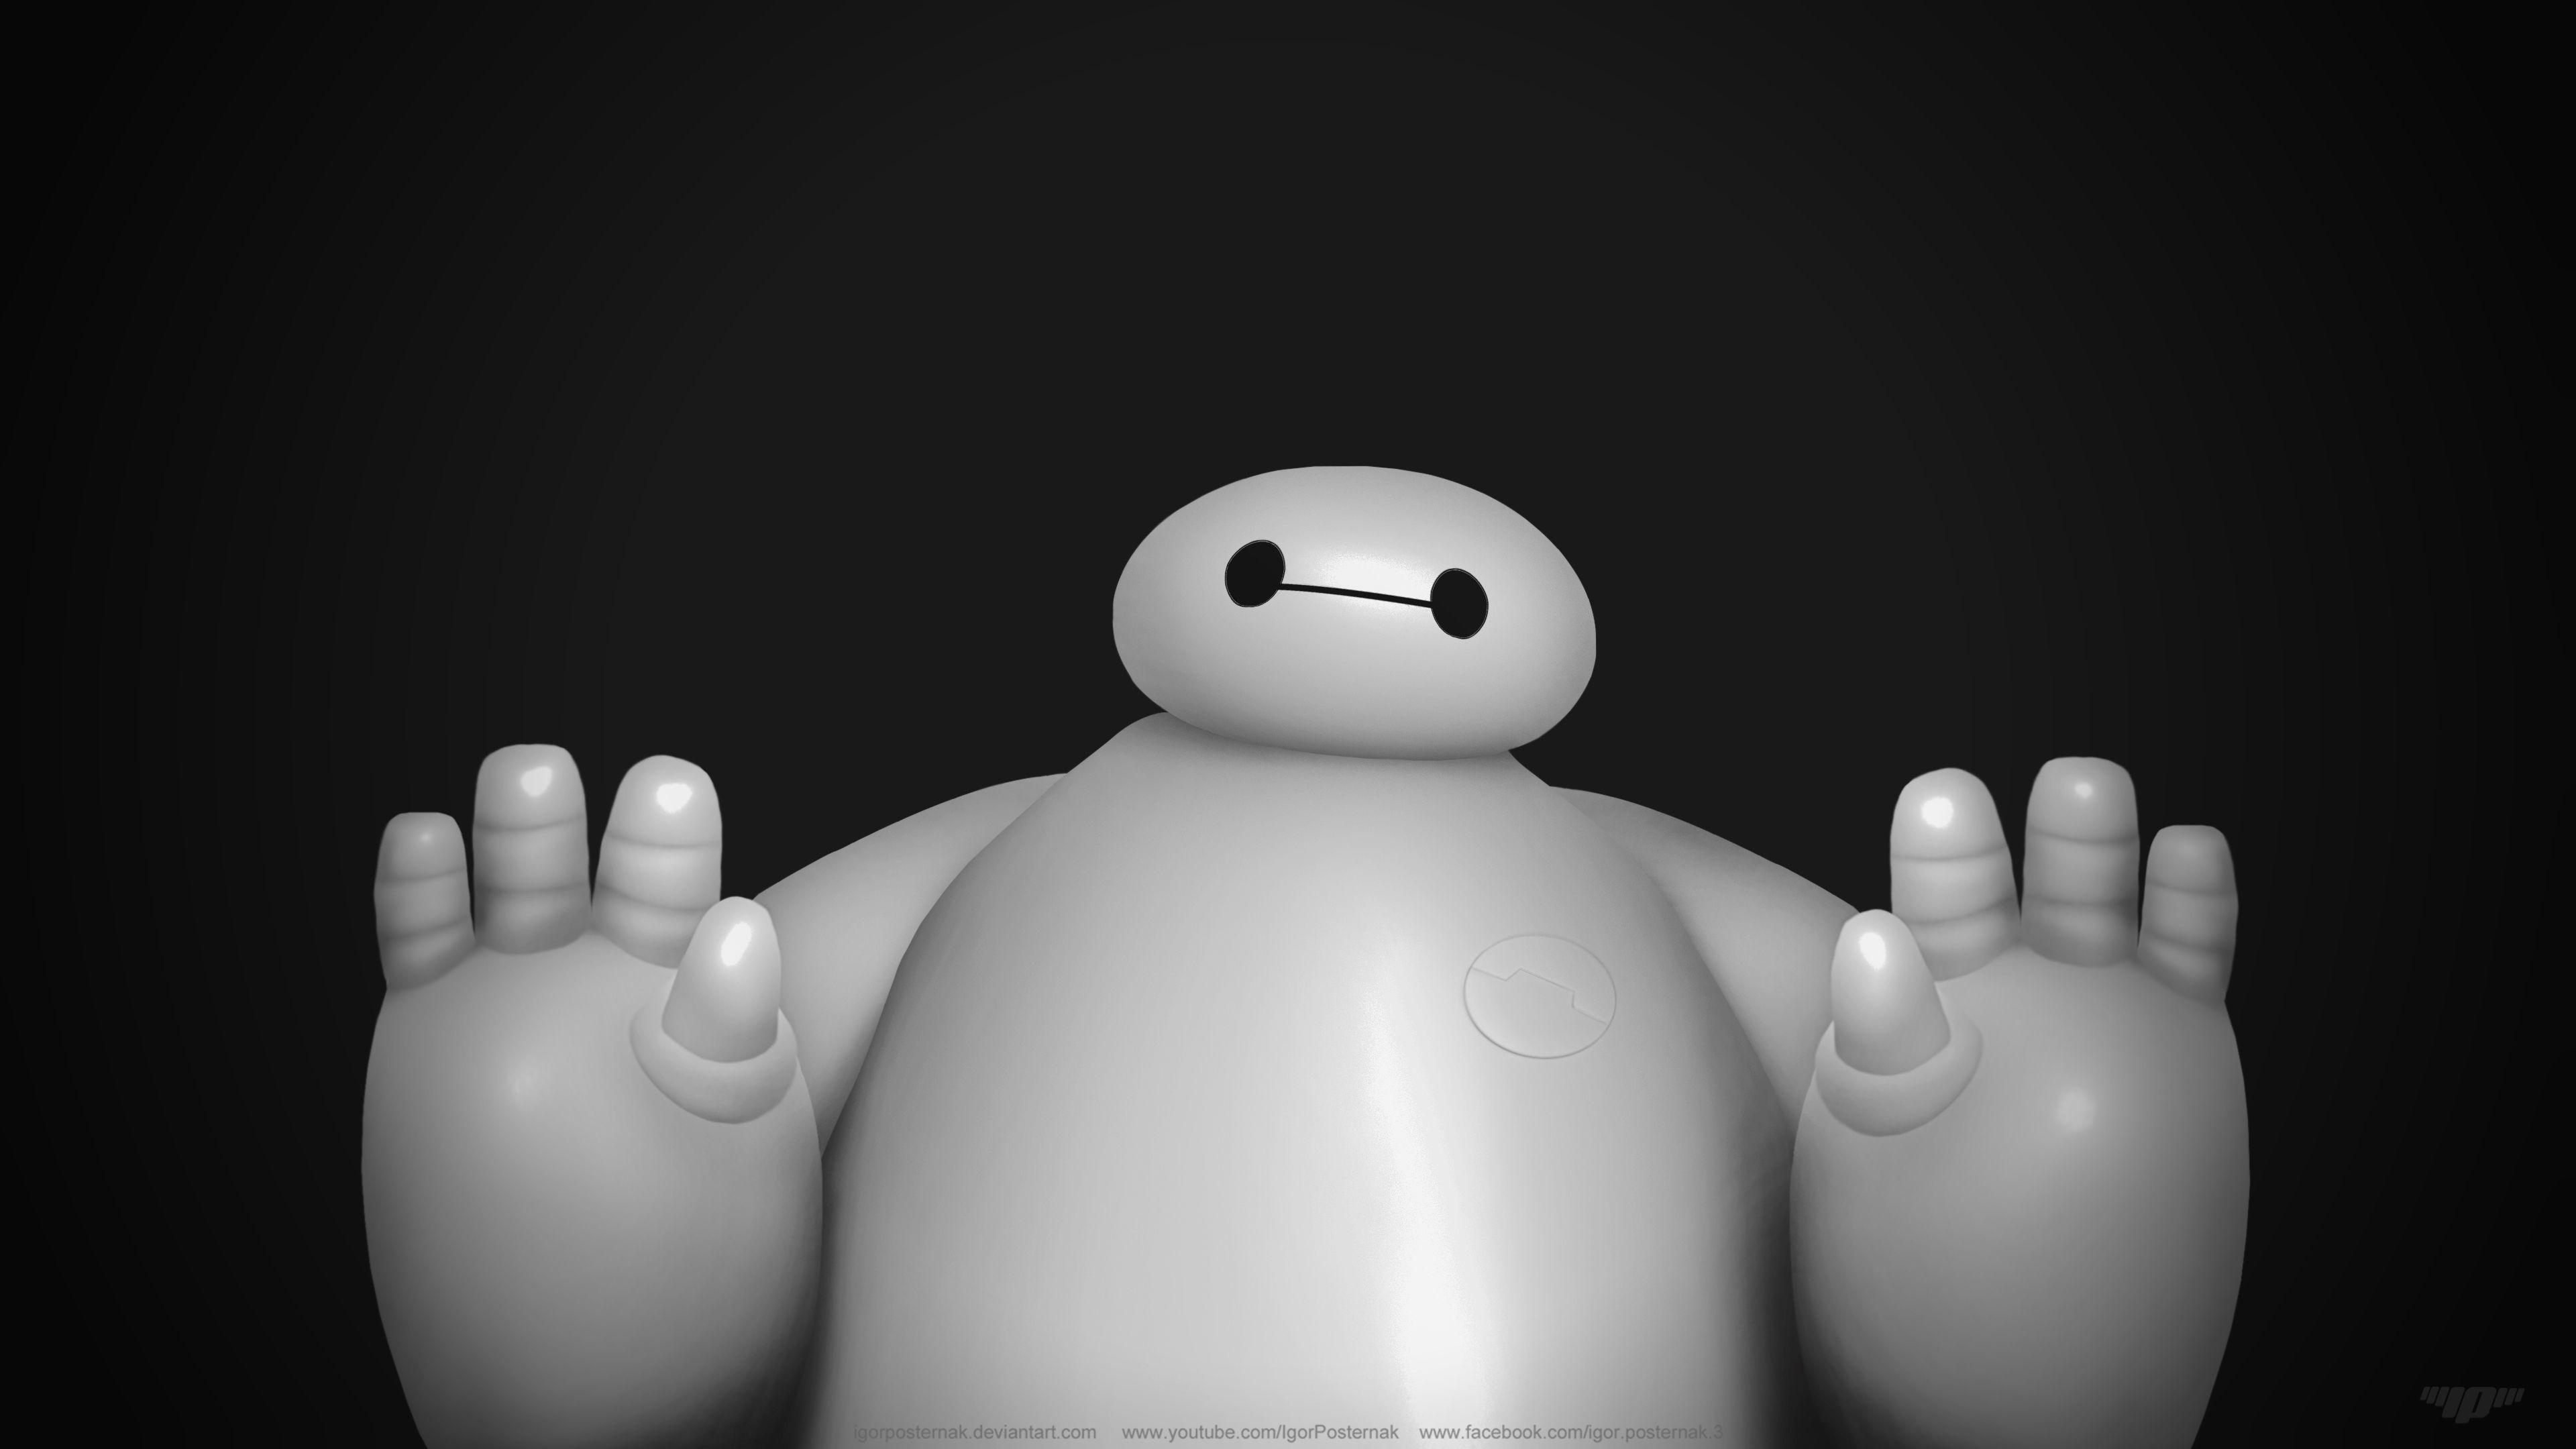 81 Big Hero 6 HD Wallpapers | Backgrounds - Wallpaper Abyss